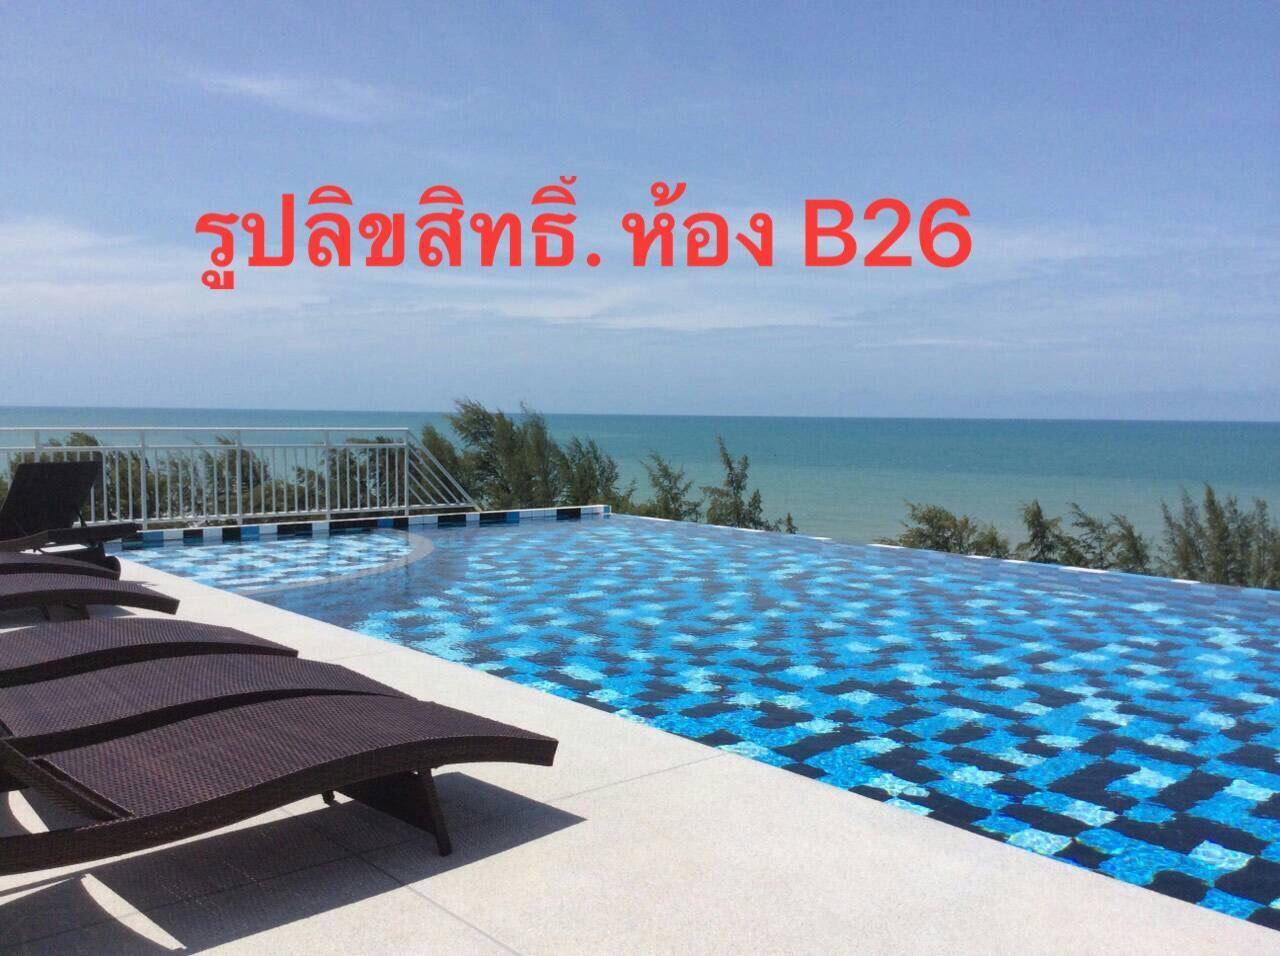 Grand Beach Condominium (Room. B26) Grand Beach Condominium (Room. B26)